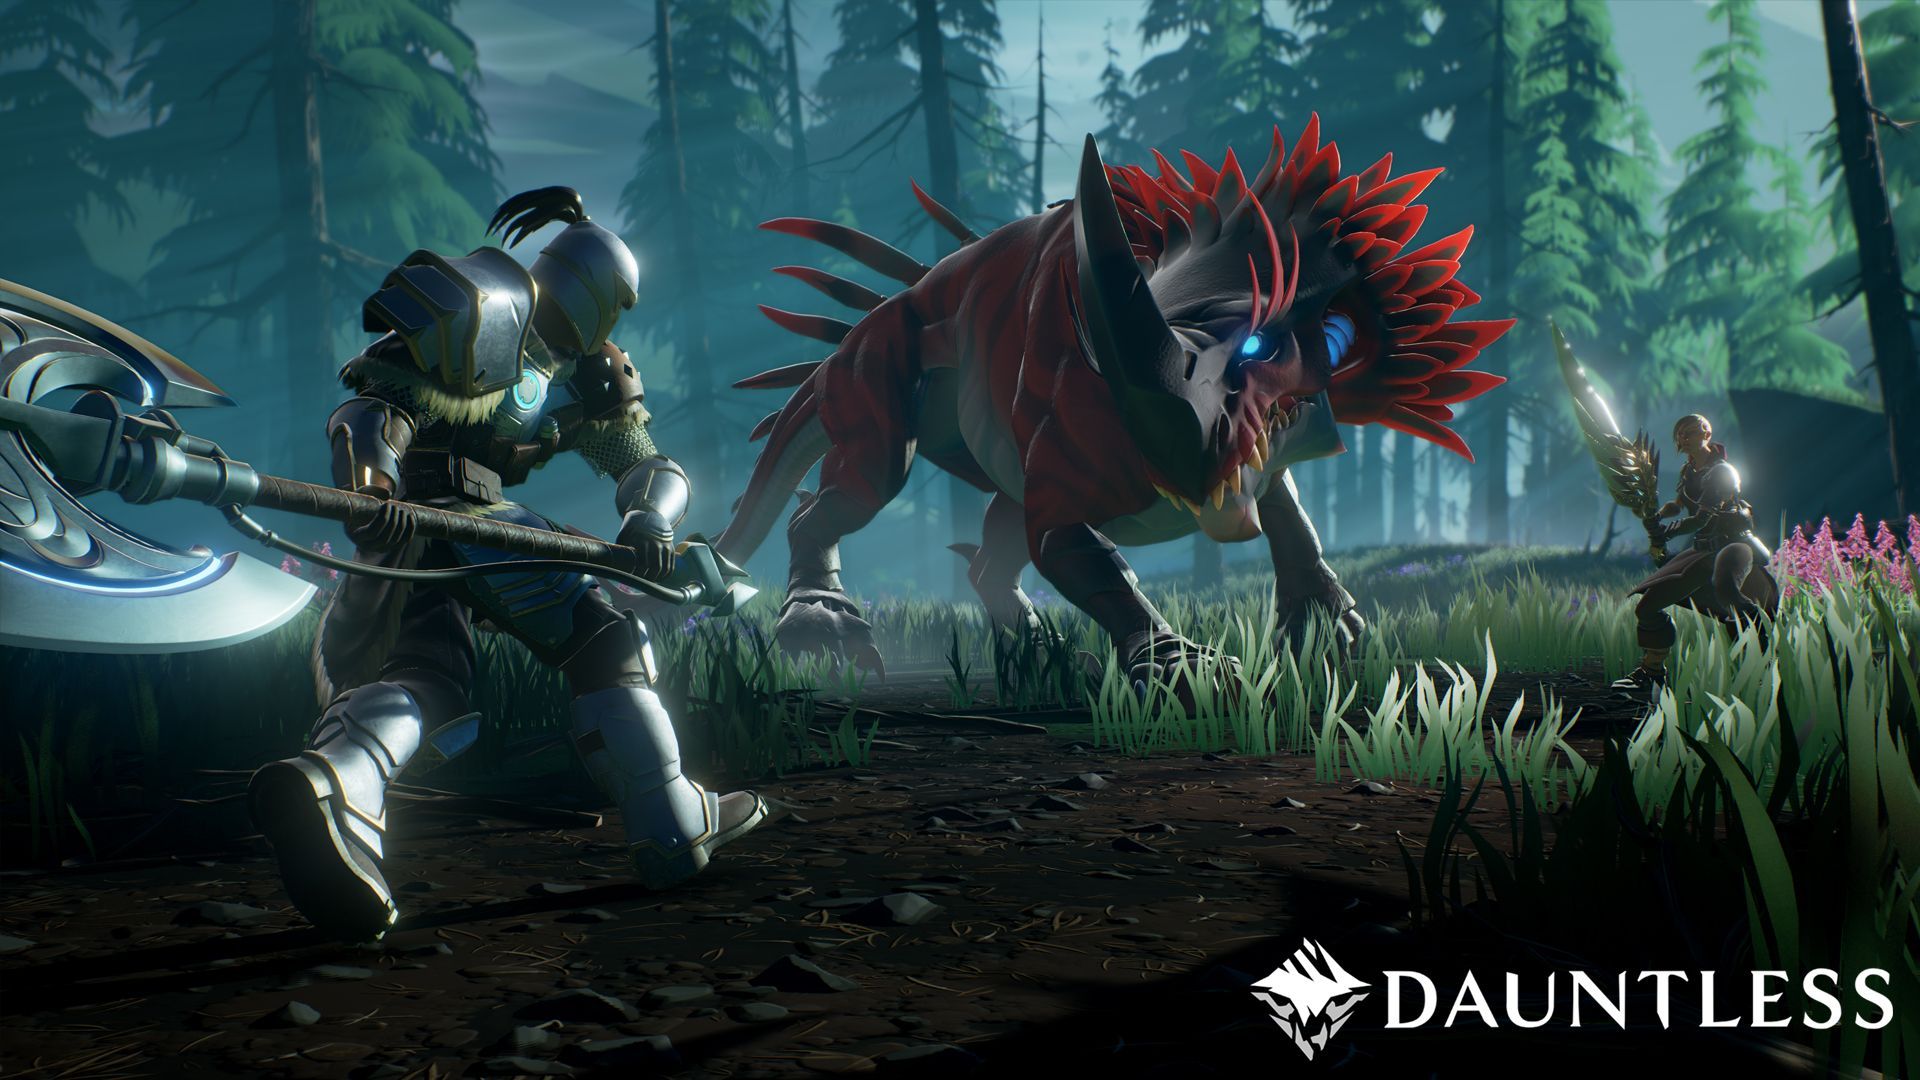 Dauntless Developer Interview - The Design Philosophy of Chris Fox